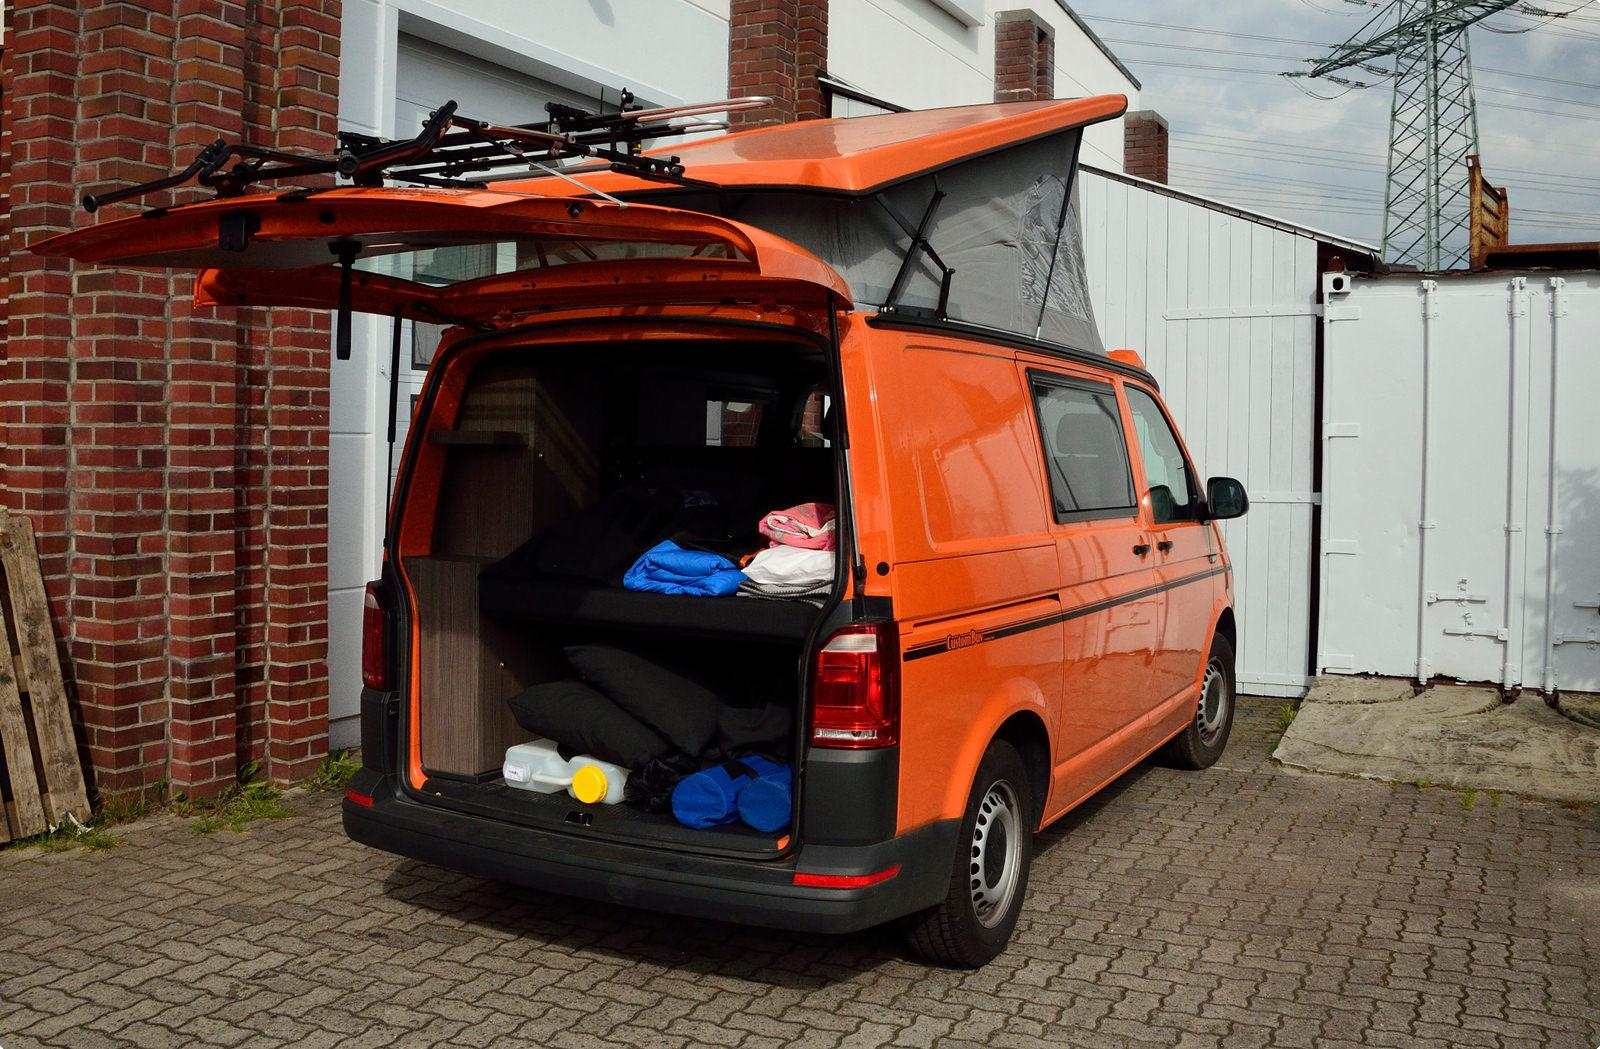 bicycle carrier for vw bus t6 paulchen hecktr ger system. Black Bedroom Furniture Sets. Home Design Ideas